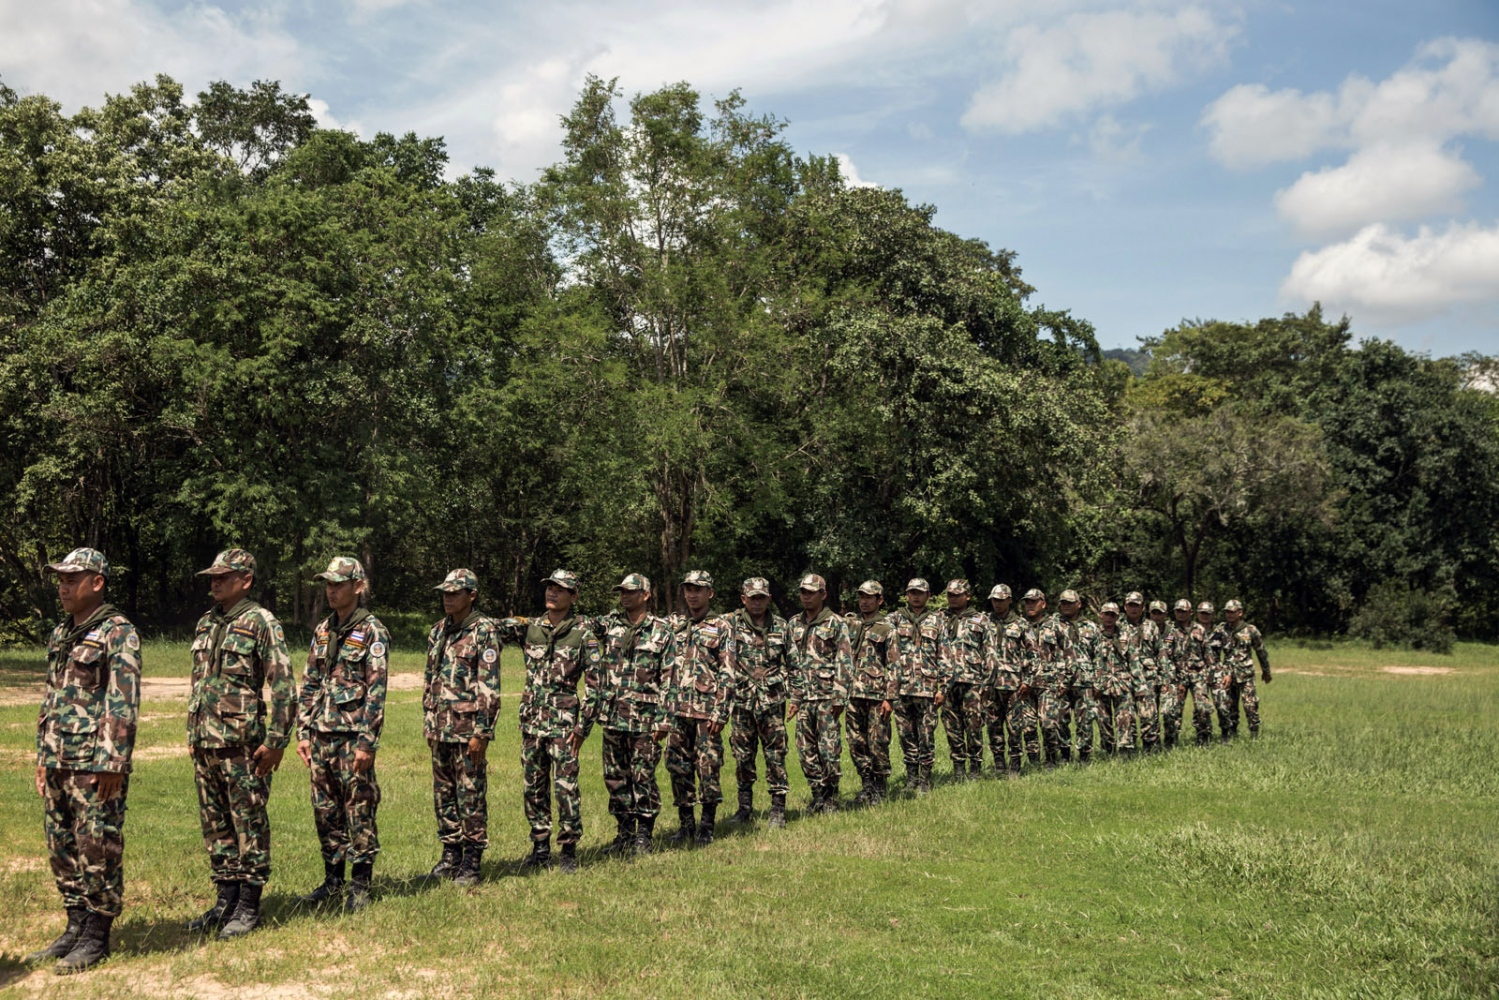 New forest ranger recruits take part in a week long training course supported by Freeland at a remote ranger station in eastern Thailand. Ta Praya National Park, Sa Kaew Province - September 2018